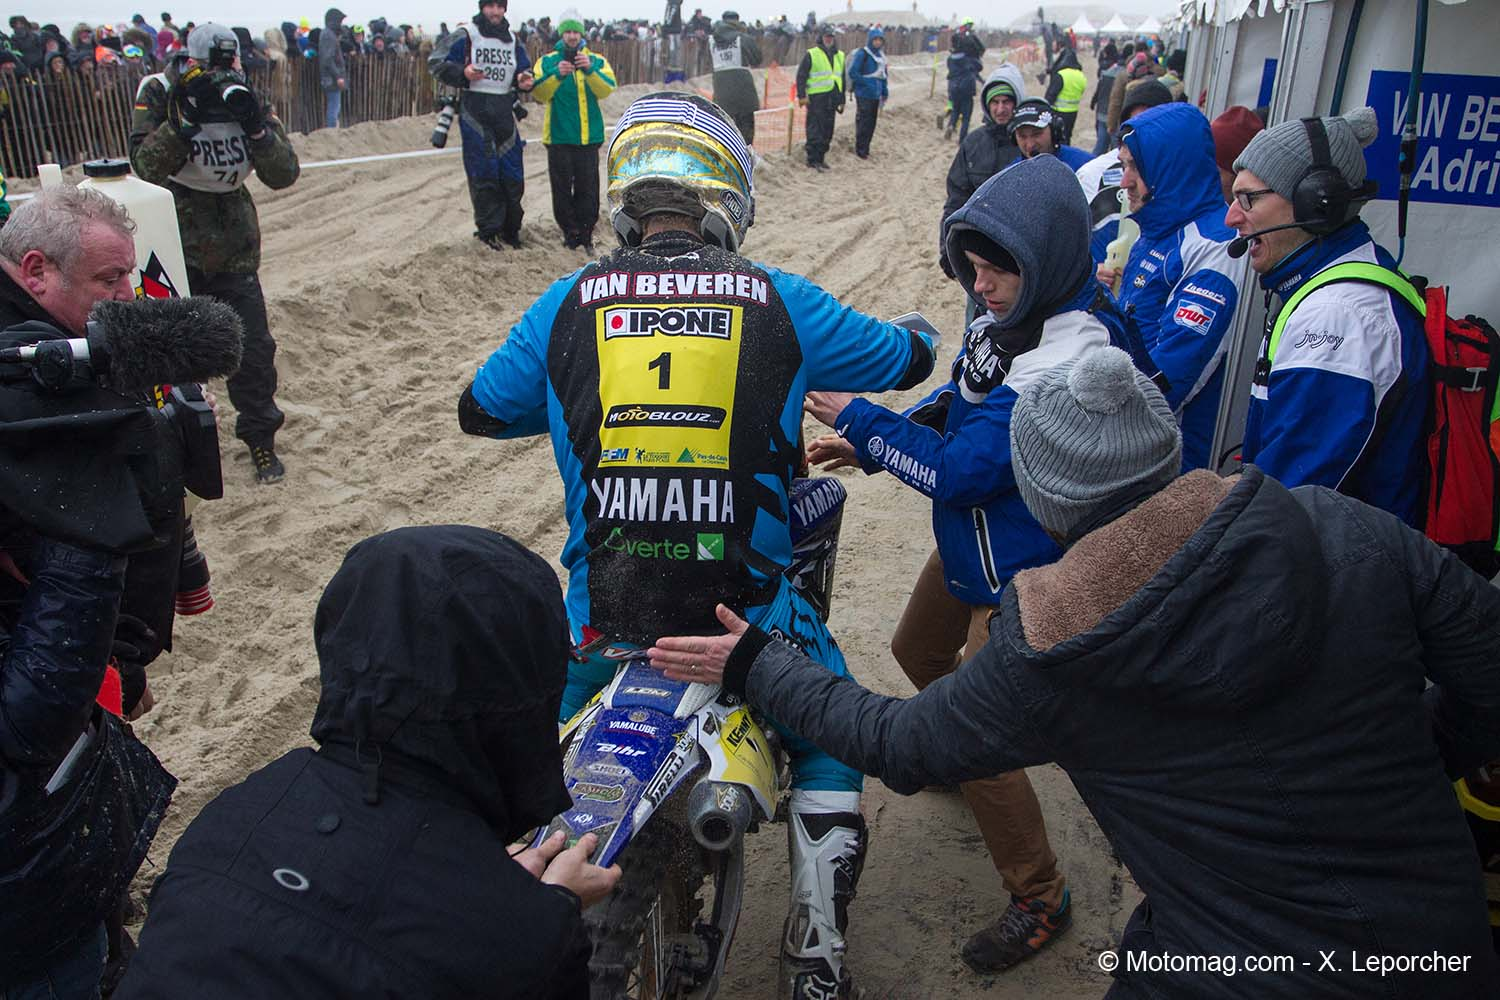 Enduropale : Van Beveren au courage